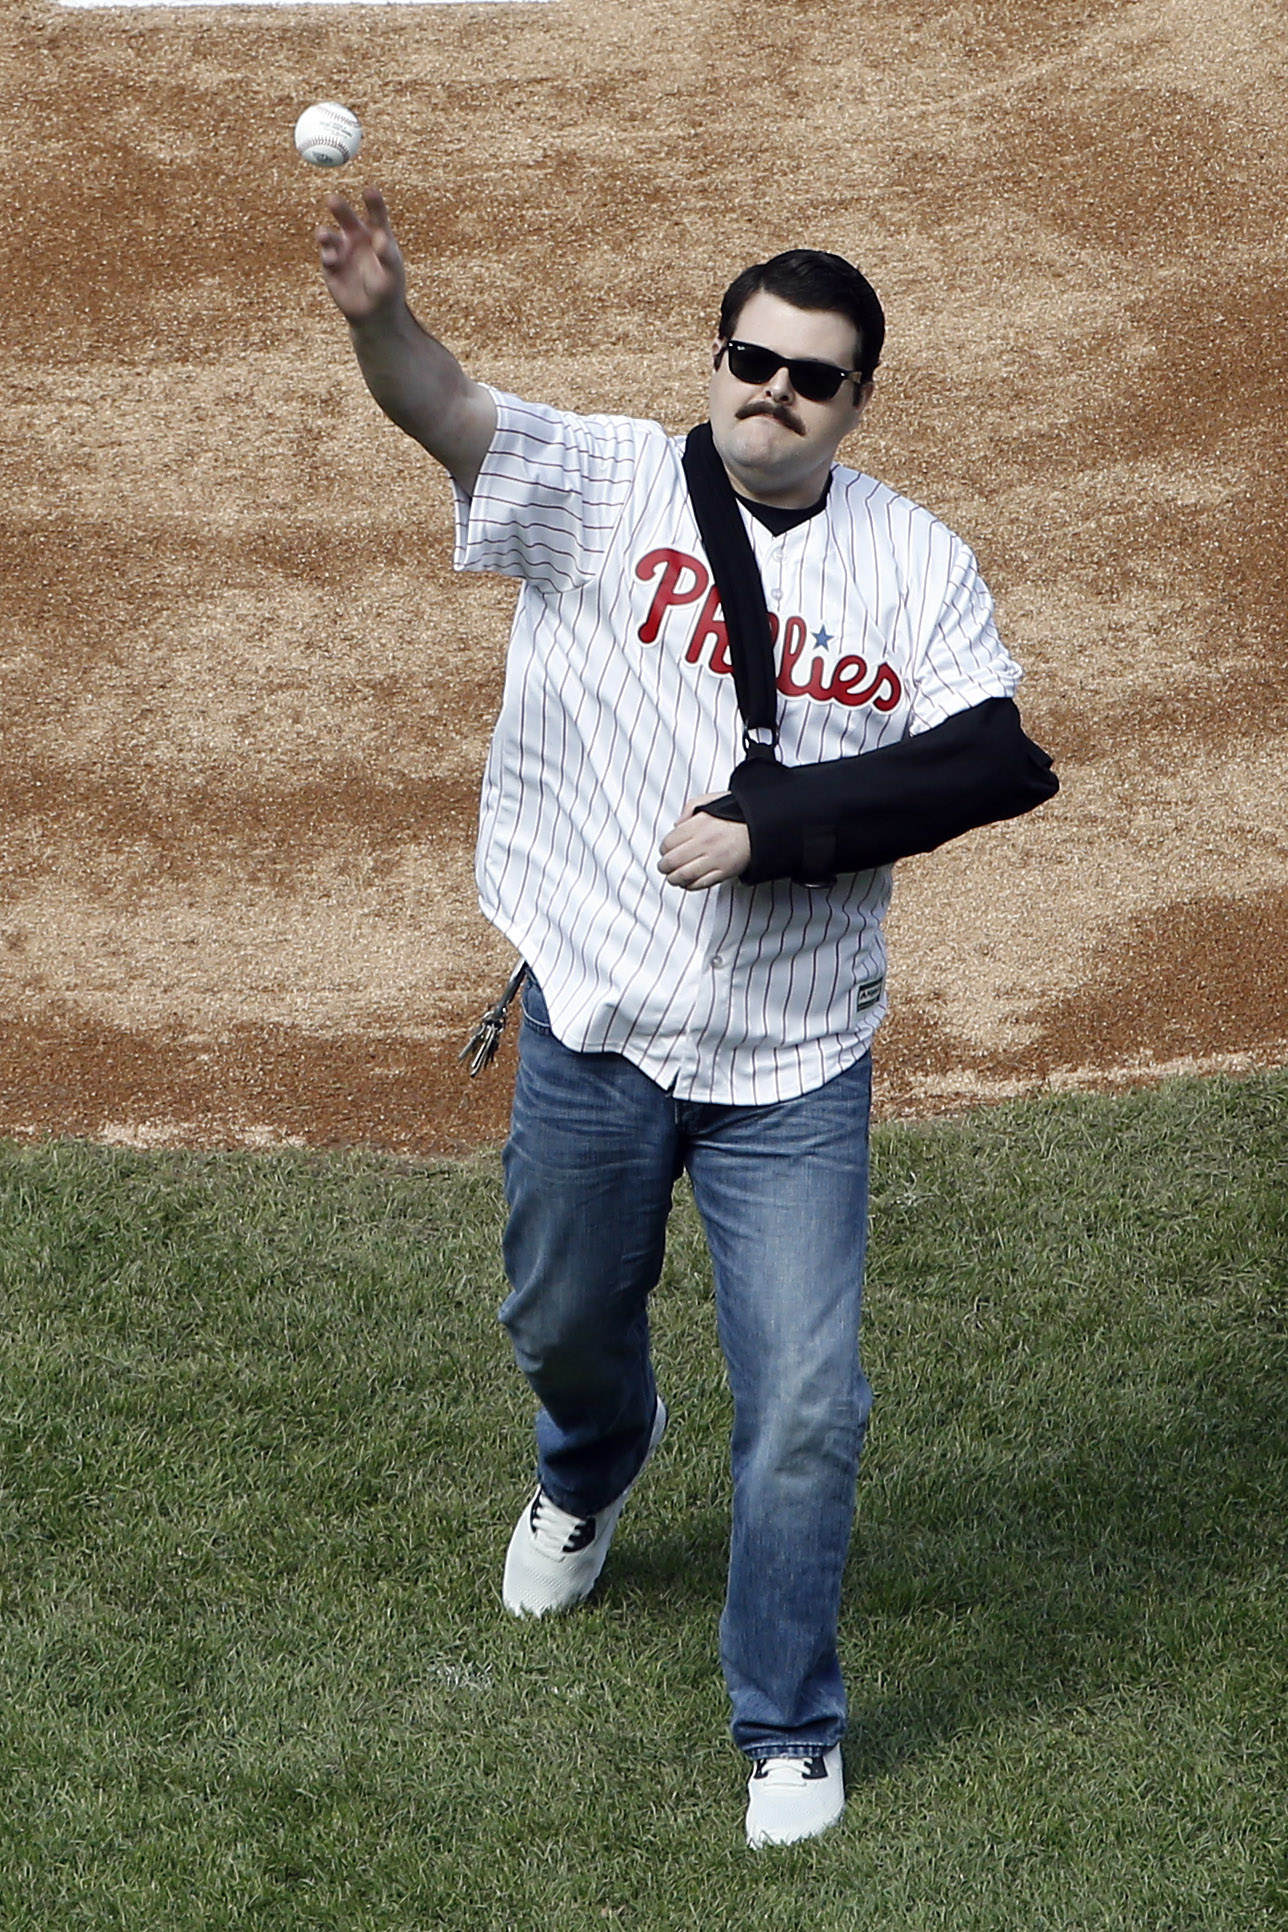 Philadelphia Police Officer Jesse Hartnett throws out a ceremonial pitch ahead of the Philadelphia Phillies home opening day baseball game against the San Diego Padres, Monday, April 11, 2016, in Philadelphia. (AP Photo/Matt Rourke)